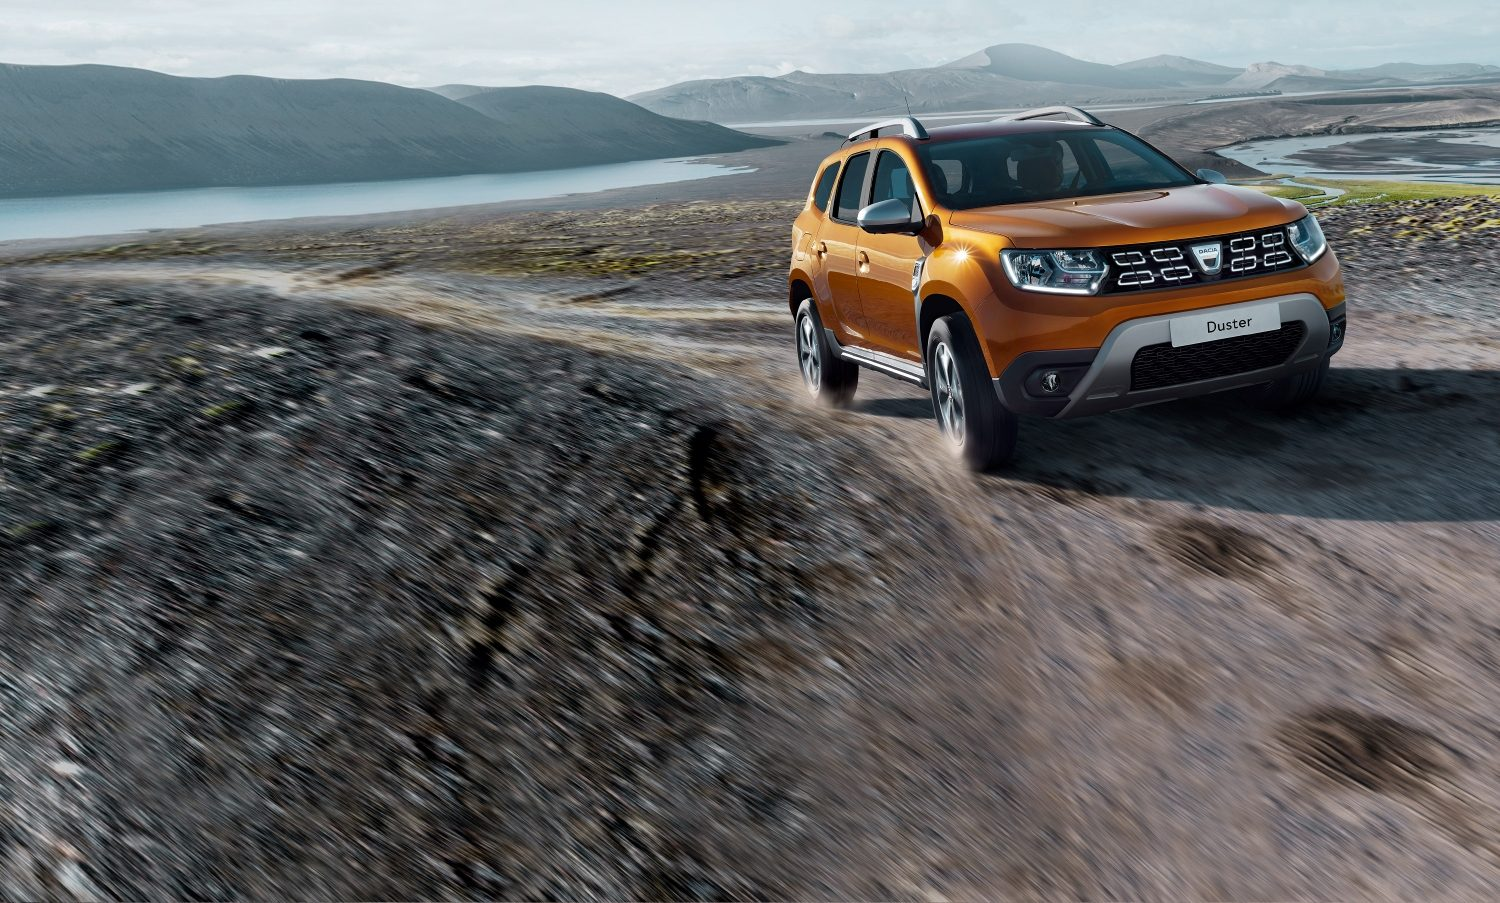 dacia-duster-beauty-shot-desktop.jpg.ximg.l_full_m.smart.jpg